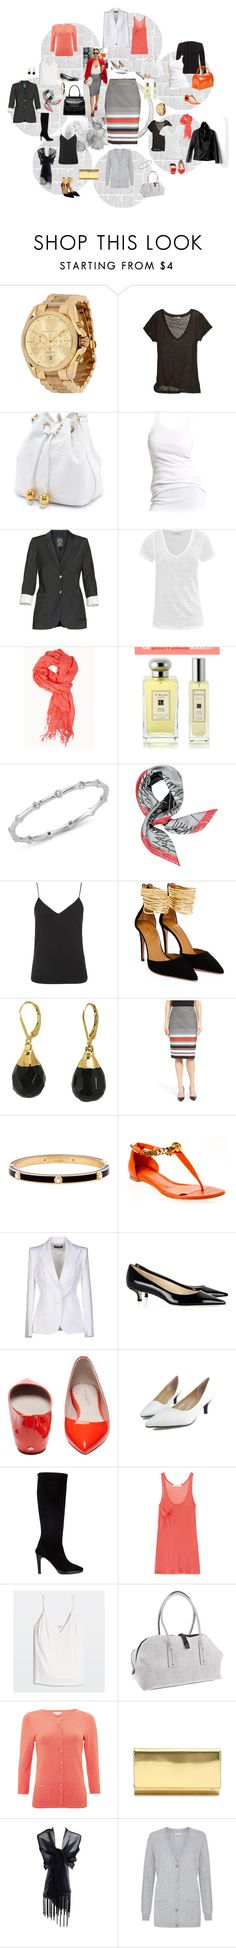 """Love my stripped skirt with everything!!!"" by carladresser ❤ liked on Polyvore featuring Michael Kors, VanessaMorin, Calypso St. Barth, Soaked in Luxury, Talula, Étoile Isabel Marant, Forever 21, Elizabeth and James, Jo Malone and Amorium"